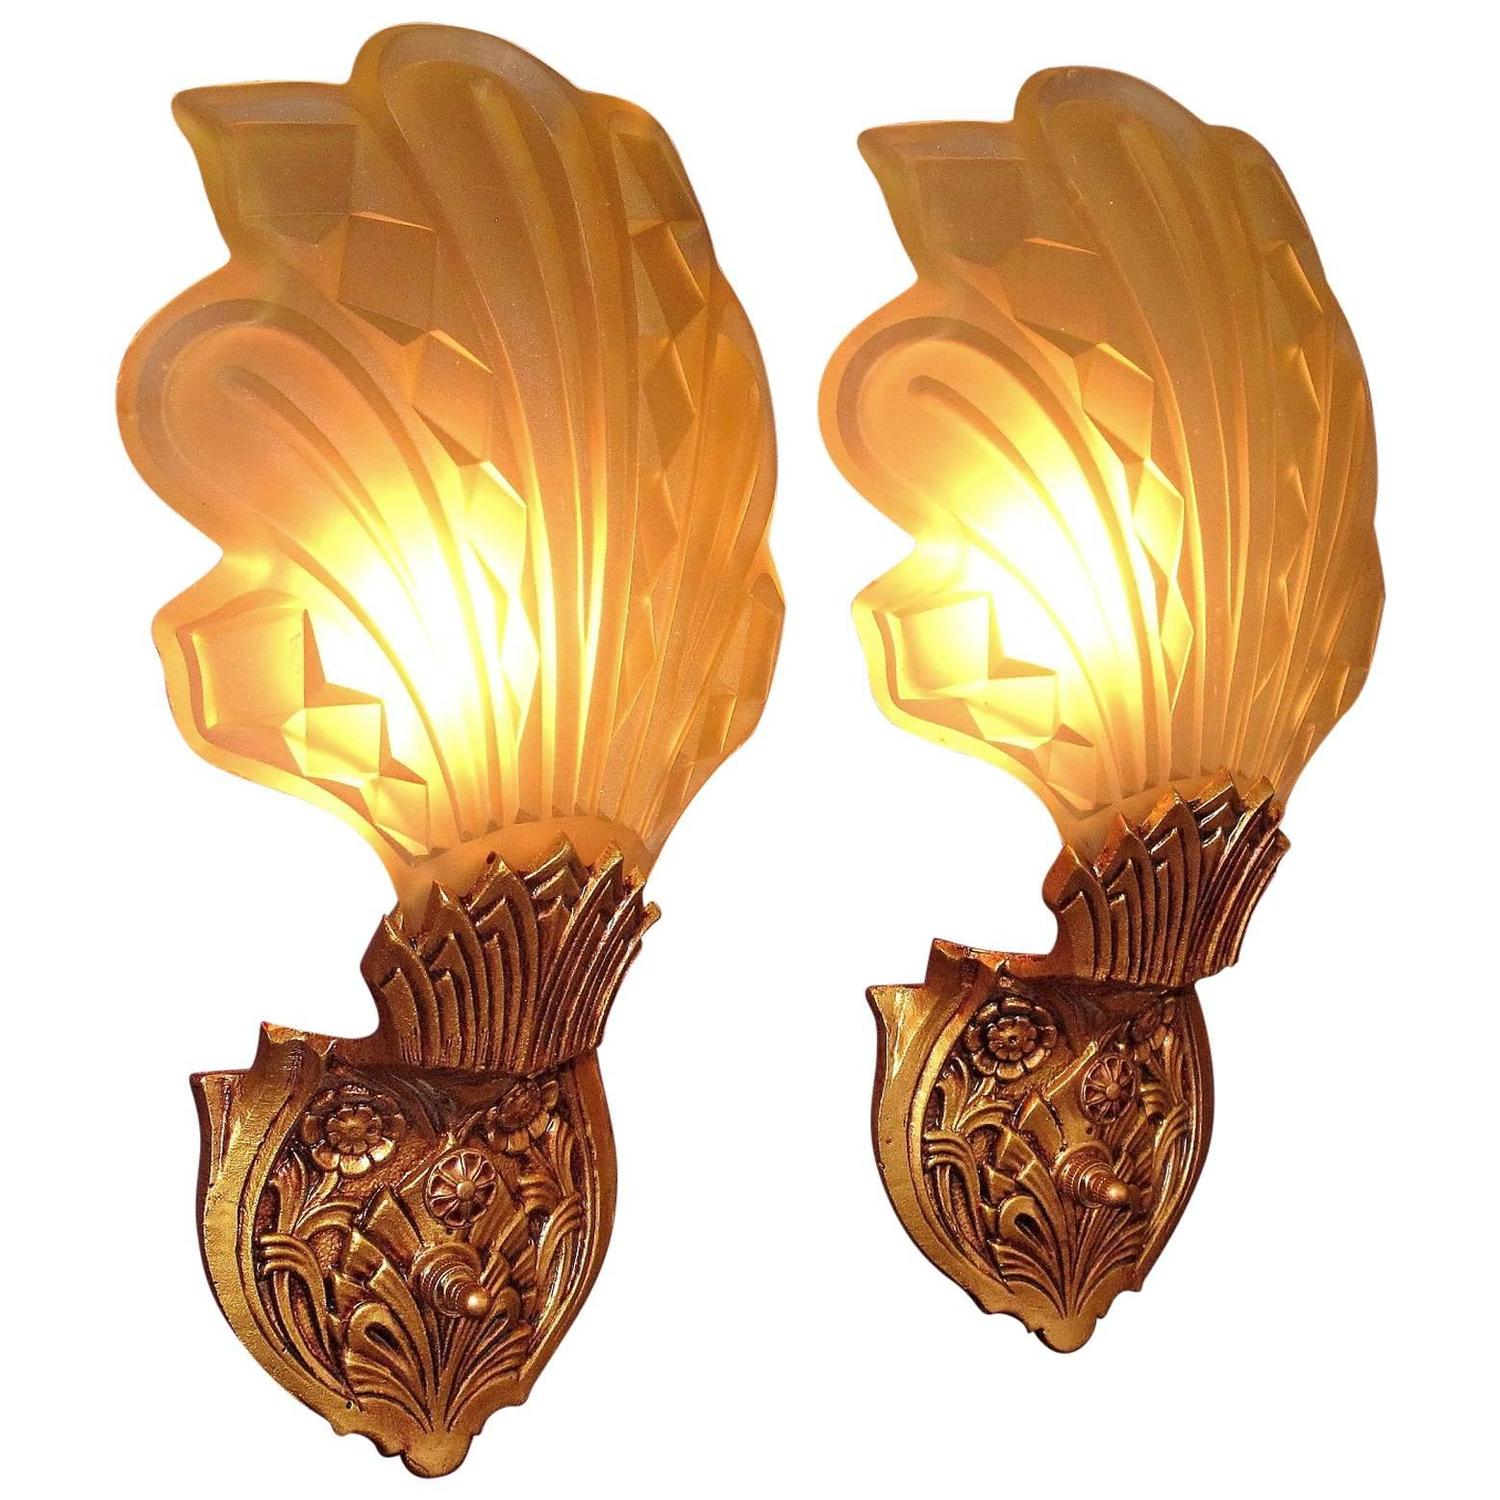 Pair Of Art Deco Bent Stained Glass Theatre Wall Sconces Fl Design 1920s For At 1stdibs